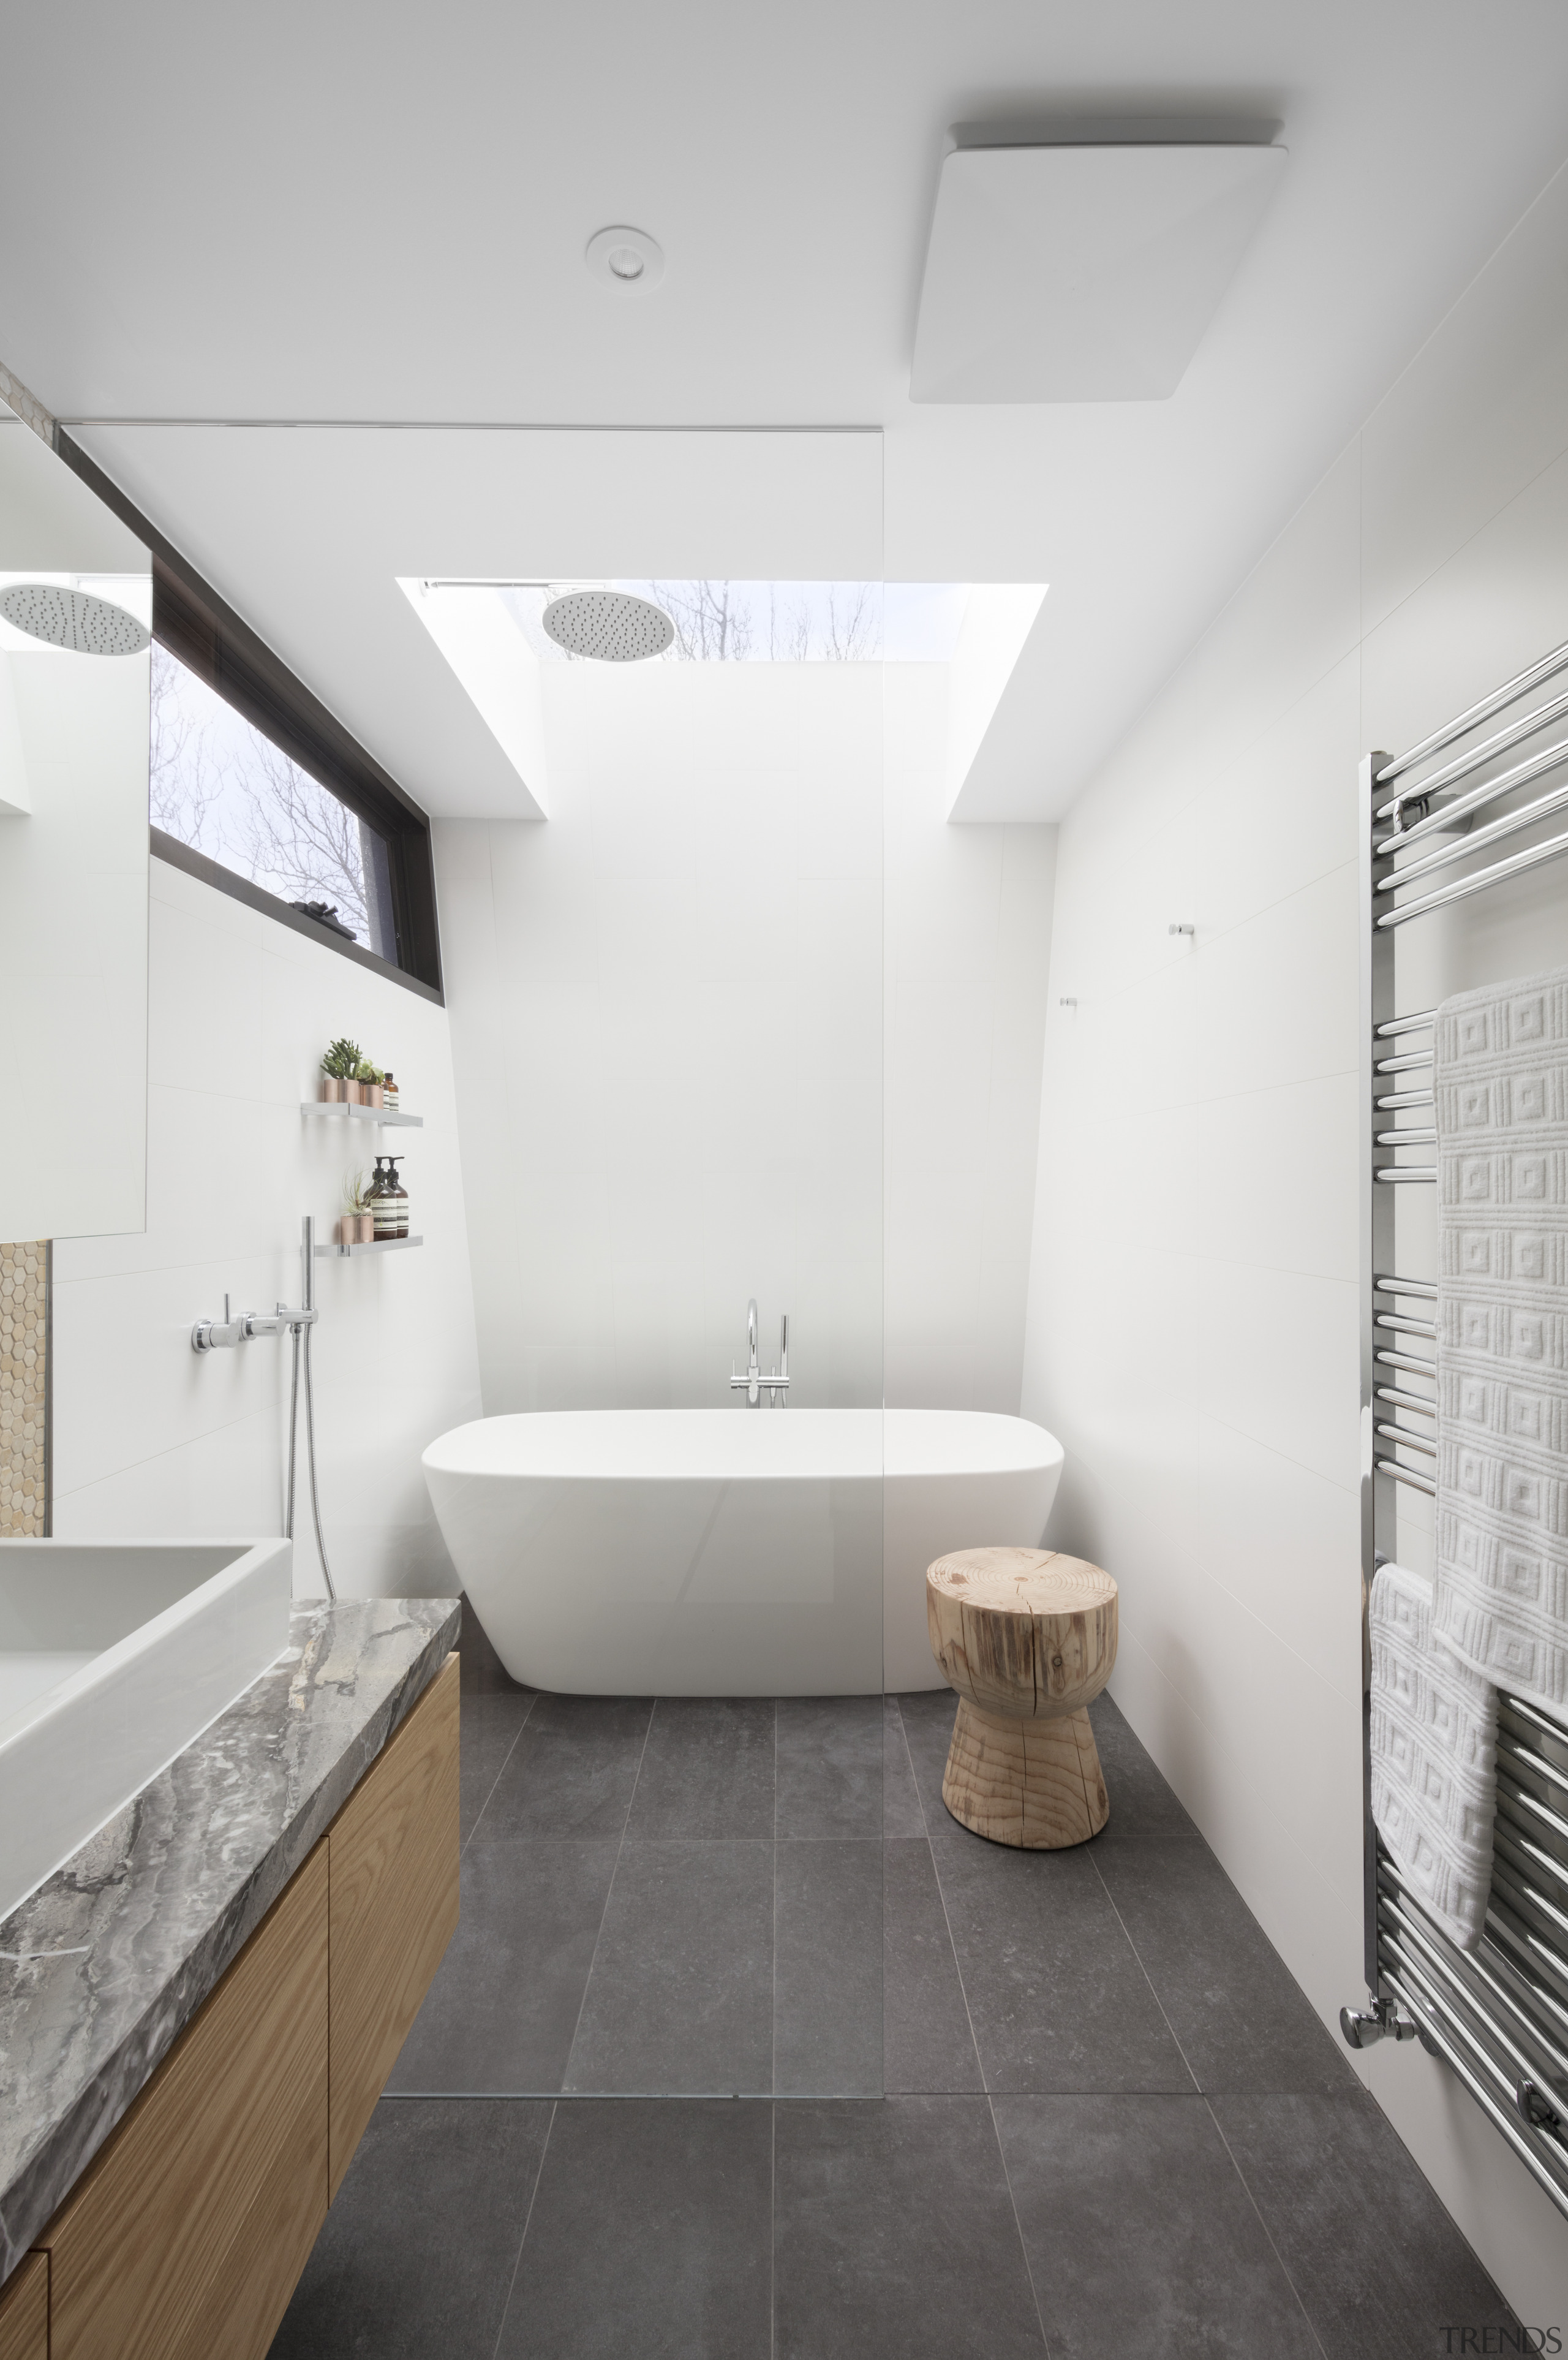 Mcmahon and Nerlich – Highly Commended – TIDA architecture, bathroom, ceiling, daylighting, floor, home, interior design, plumbing fixture, real estate, room, sink, tile, white